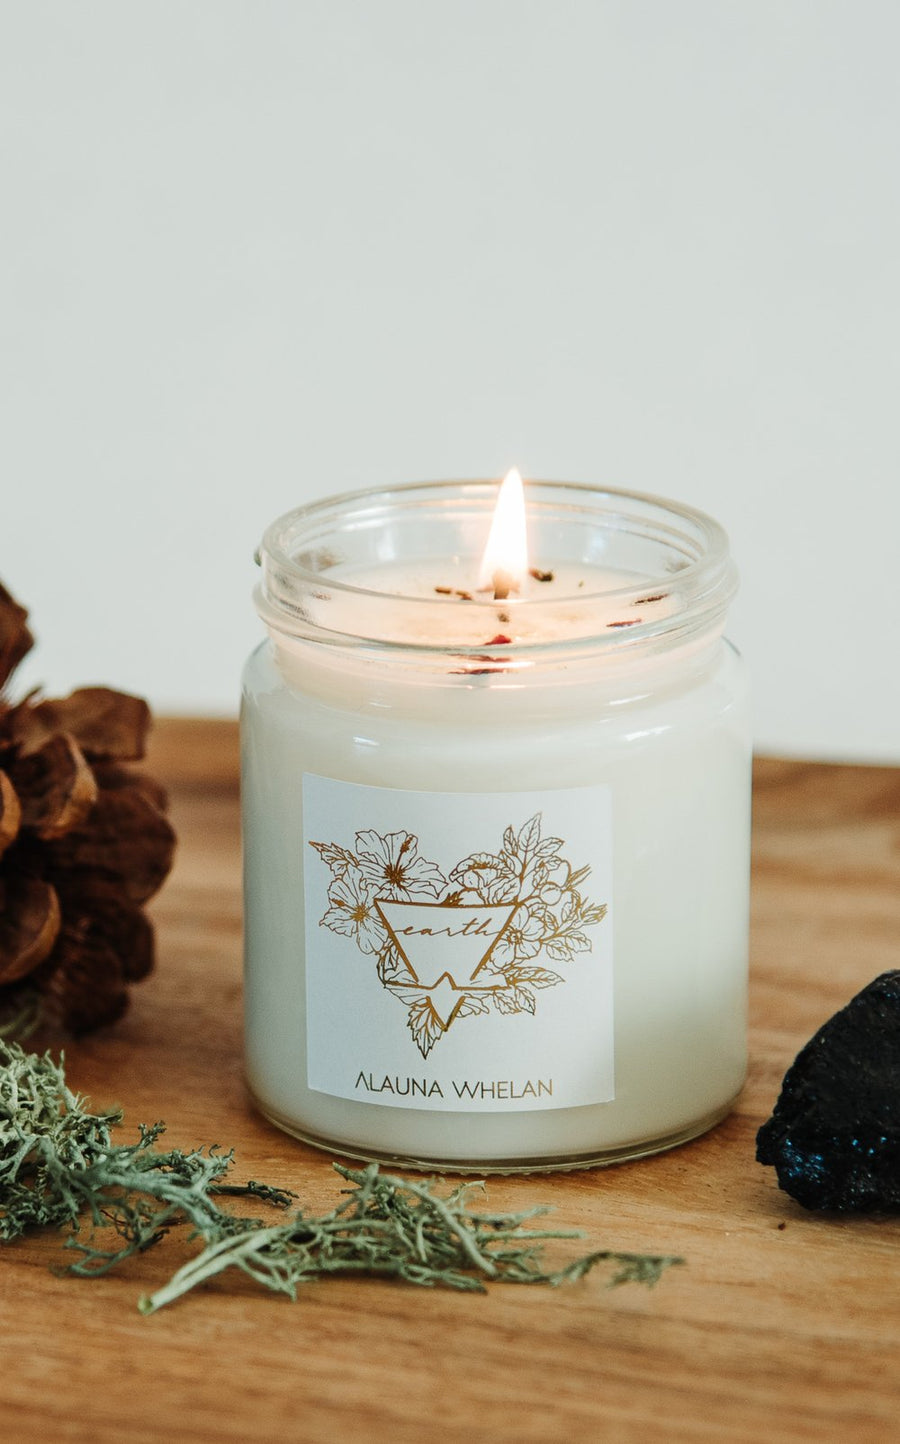 Alauna Whelan - Security Earth Intention Candle